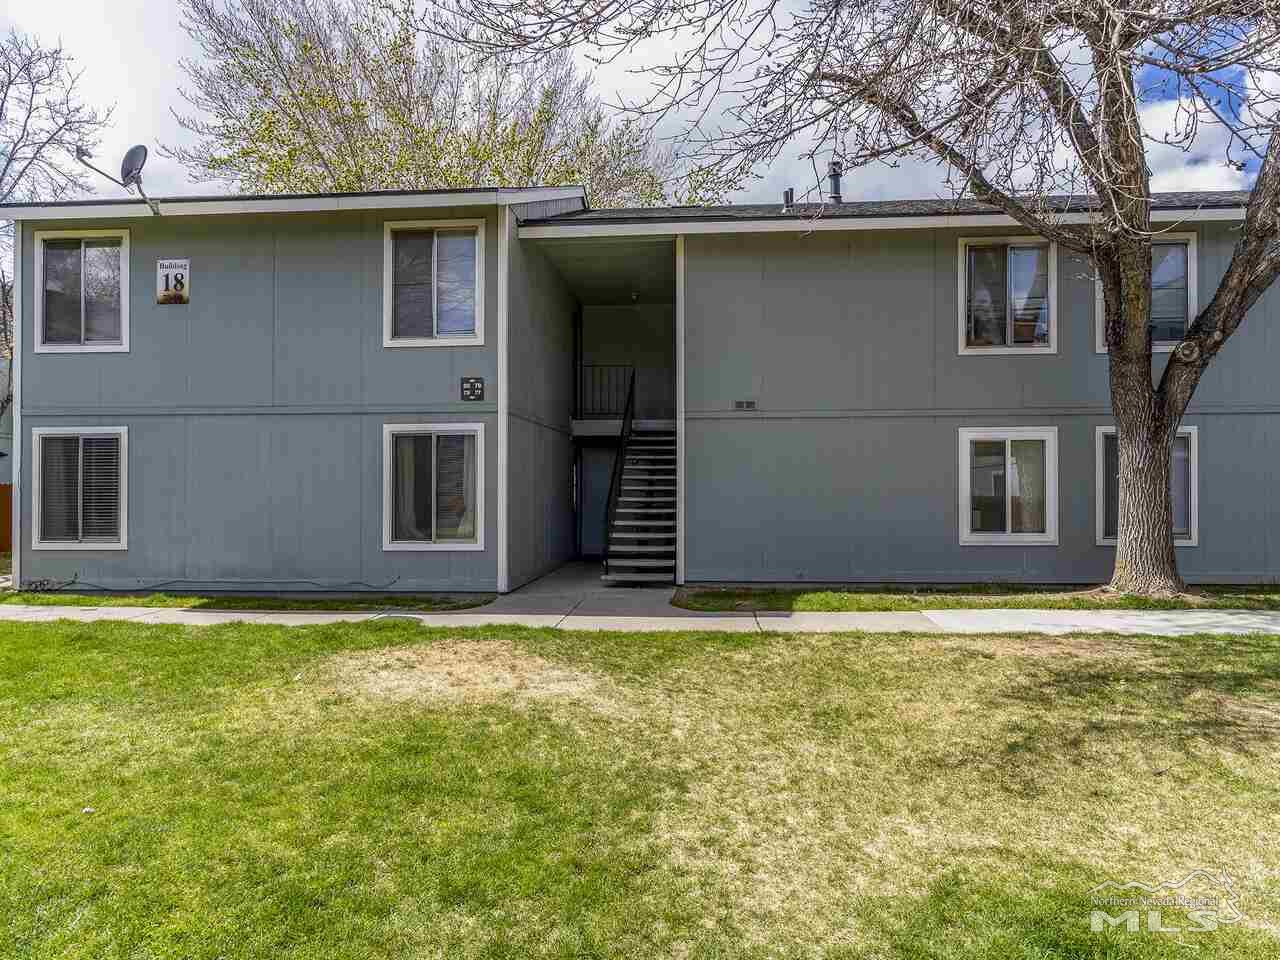 Image for 4602 Neil Rd, Reno, NV 89502